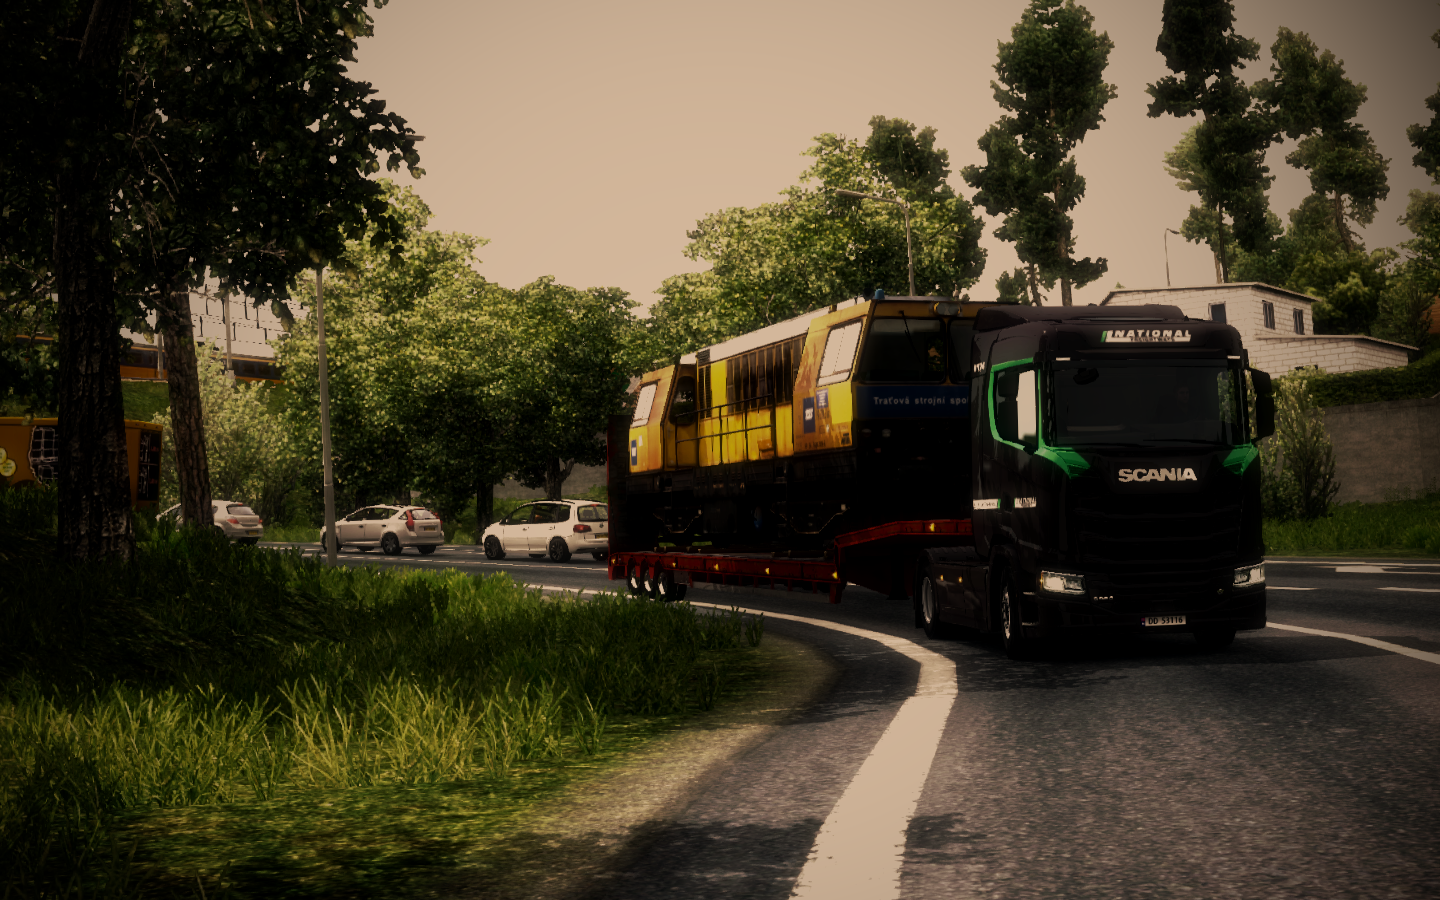 ets2_20181209_000913_00.png